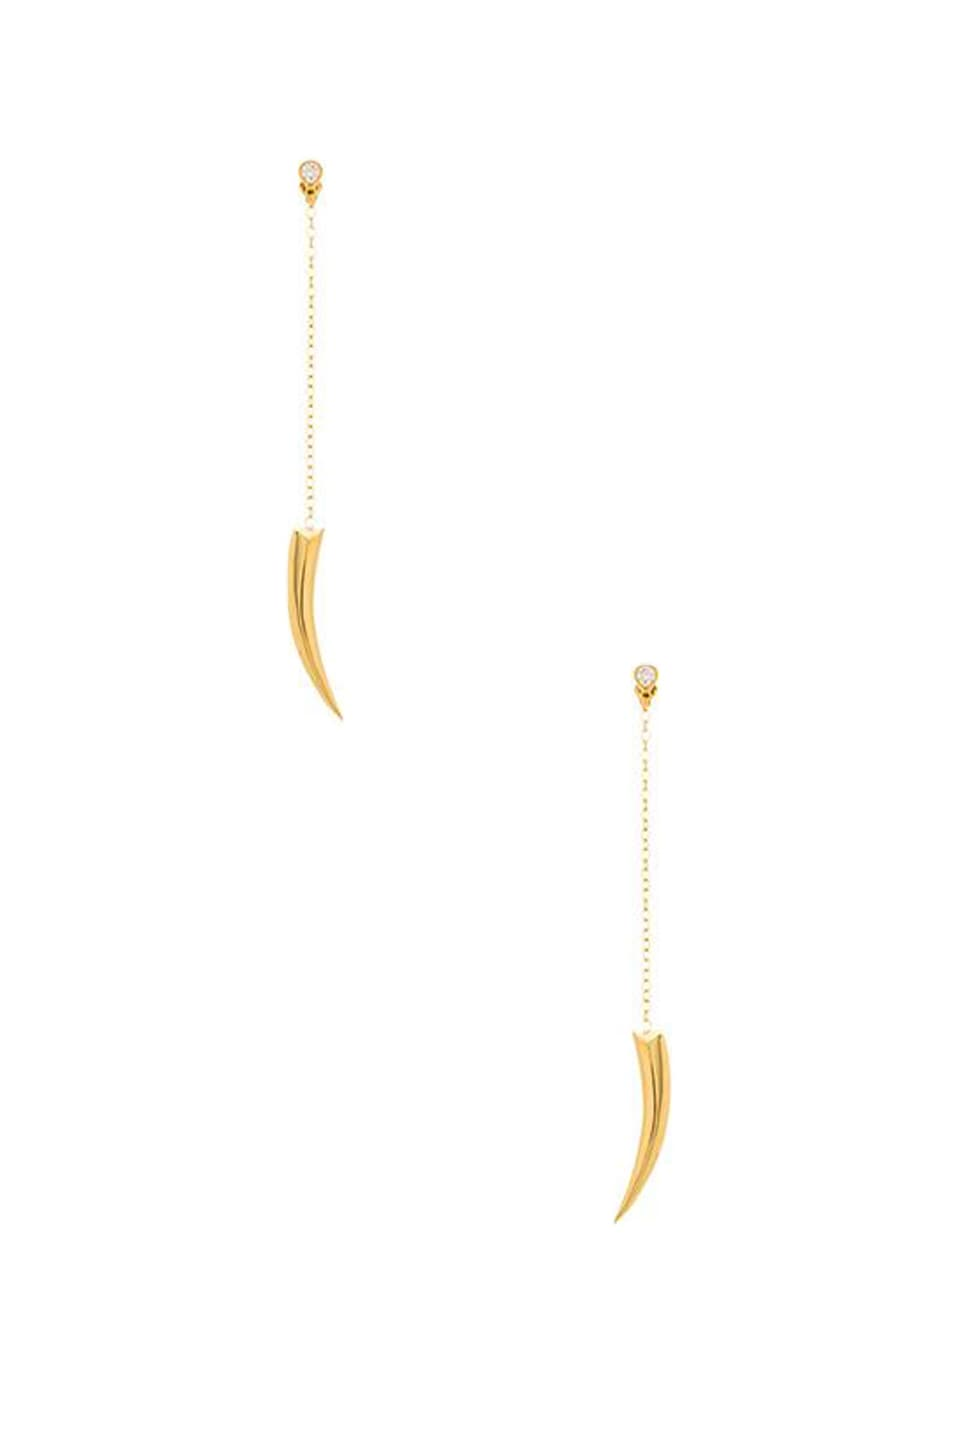 Jacquie Aiche Claw Drop Stud Earring in Gold